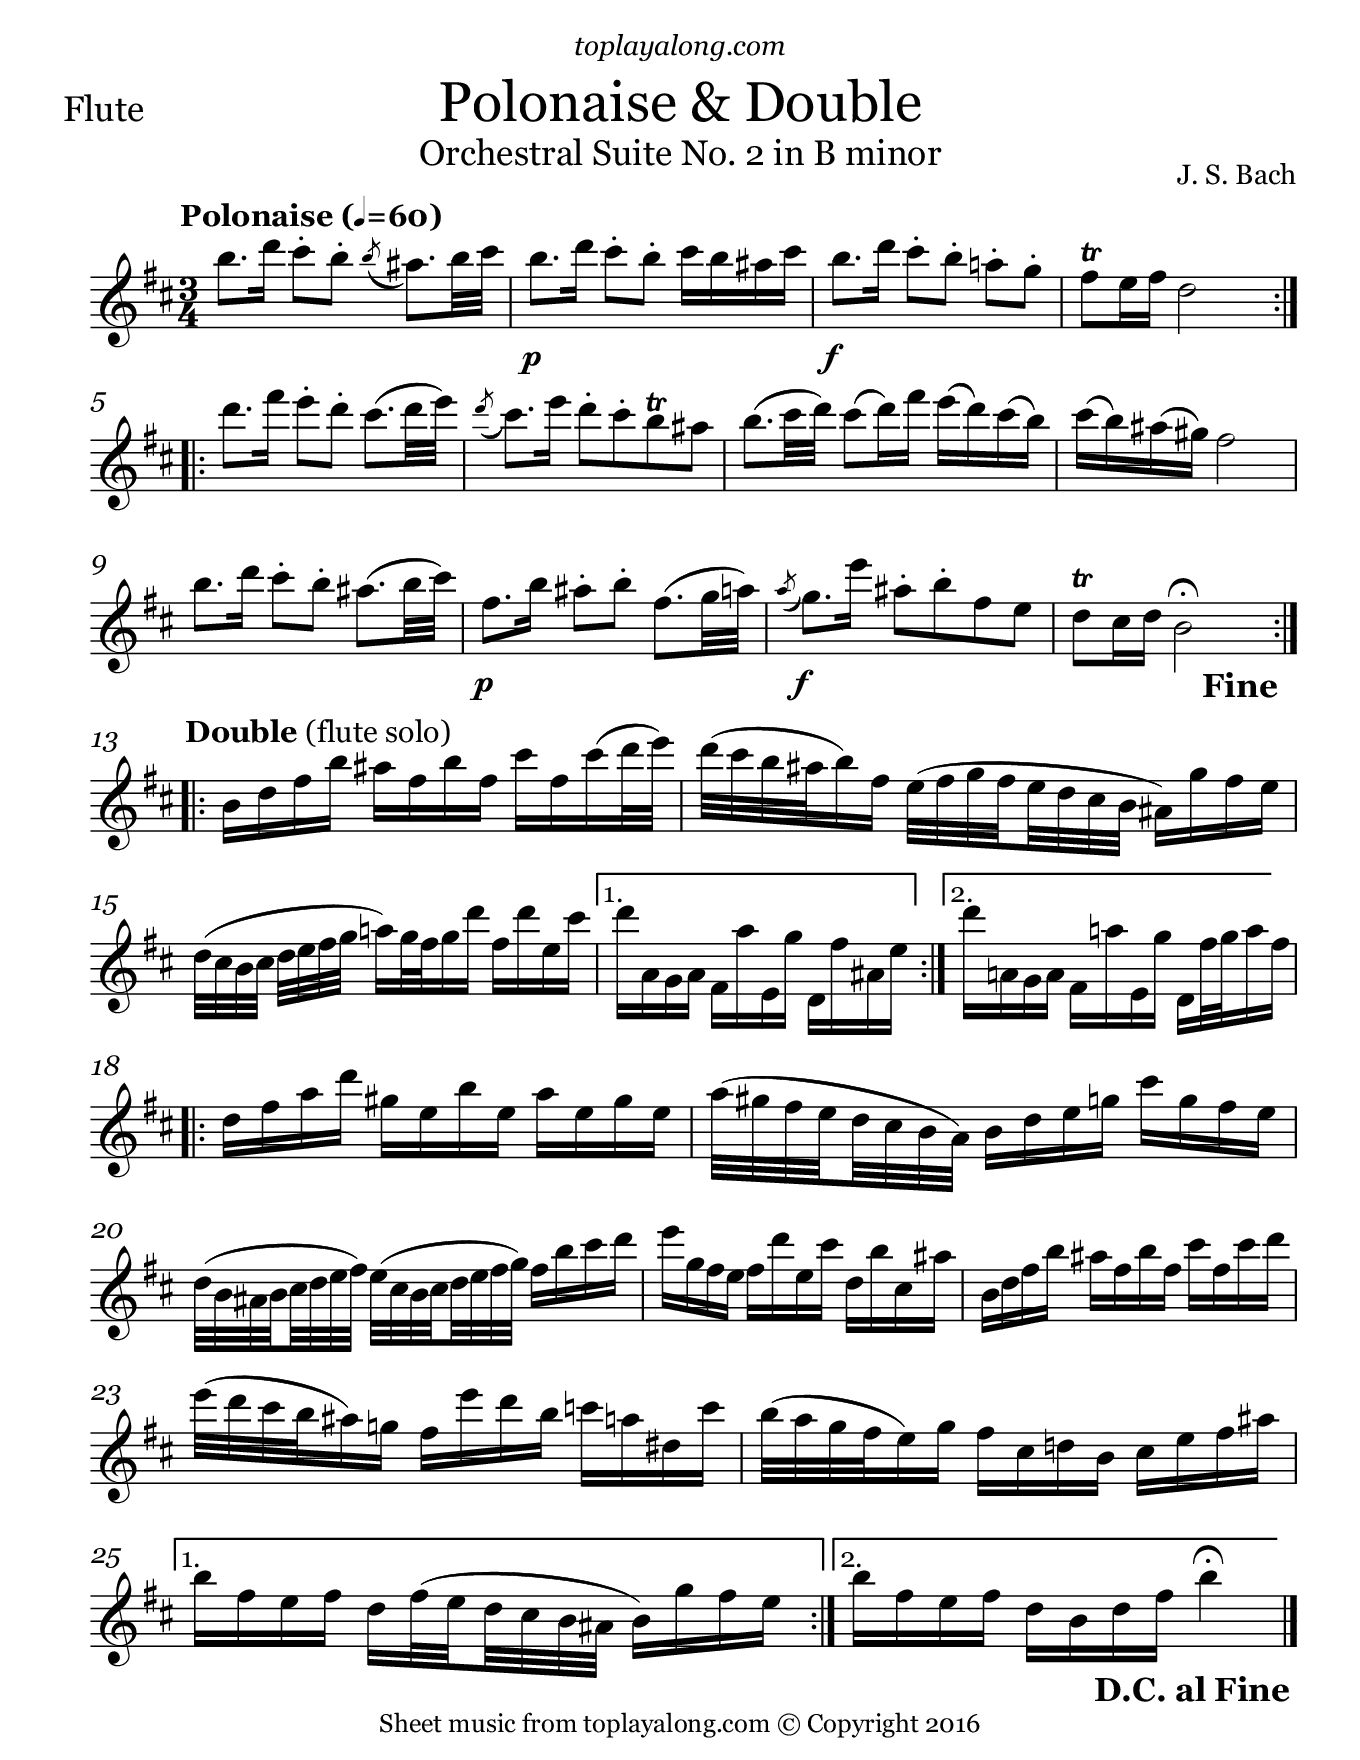 Orchestral Suite No. 2 (V. Polonaise & Double) by J. S. Bach. Sheet music for Flute, page 1.